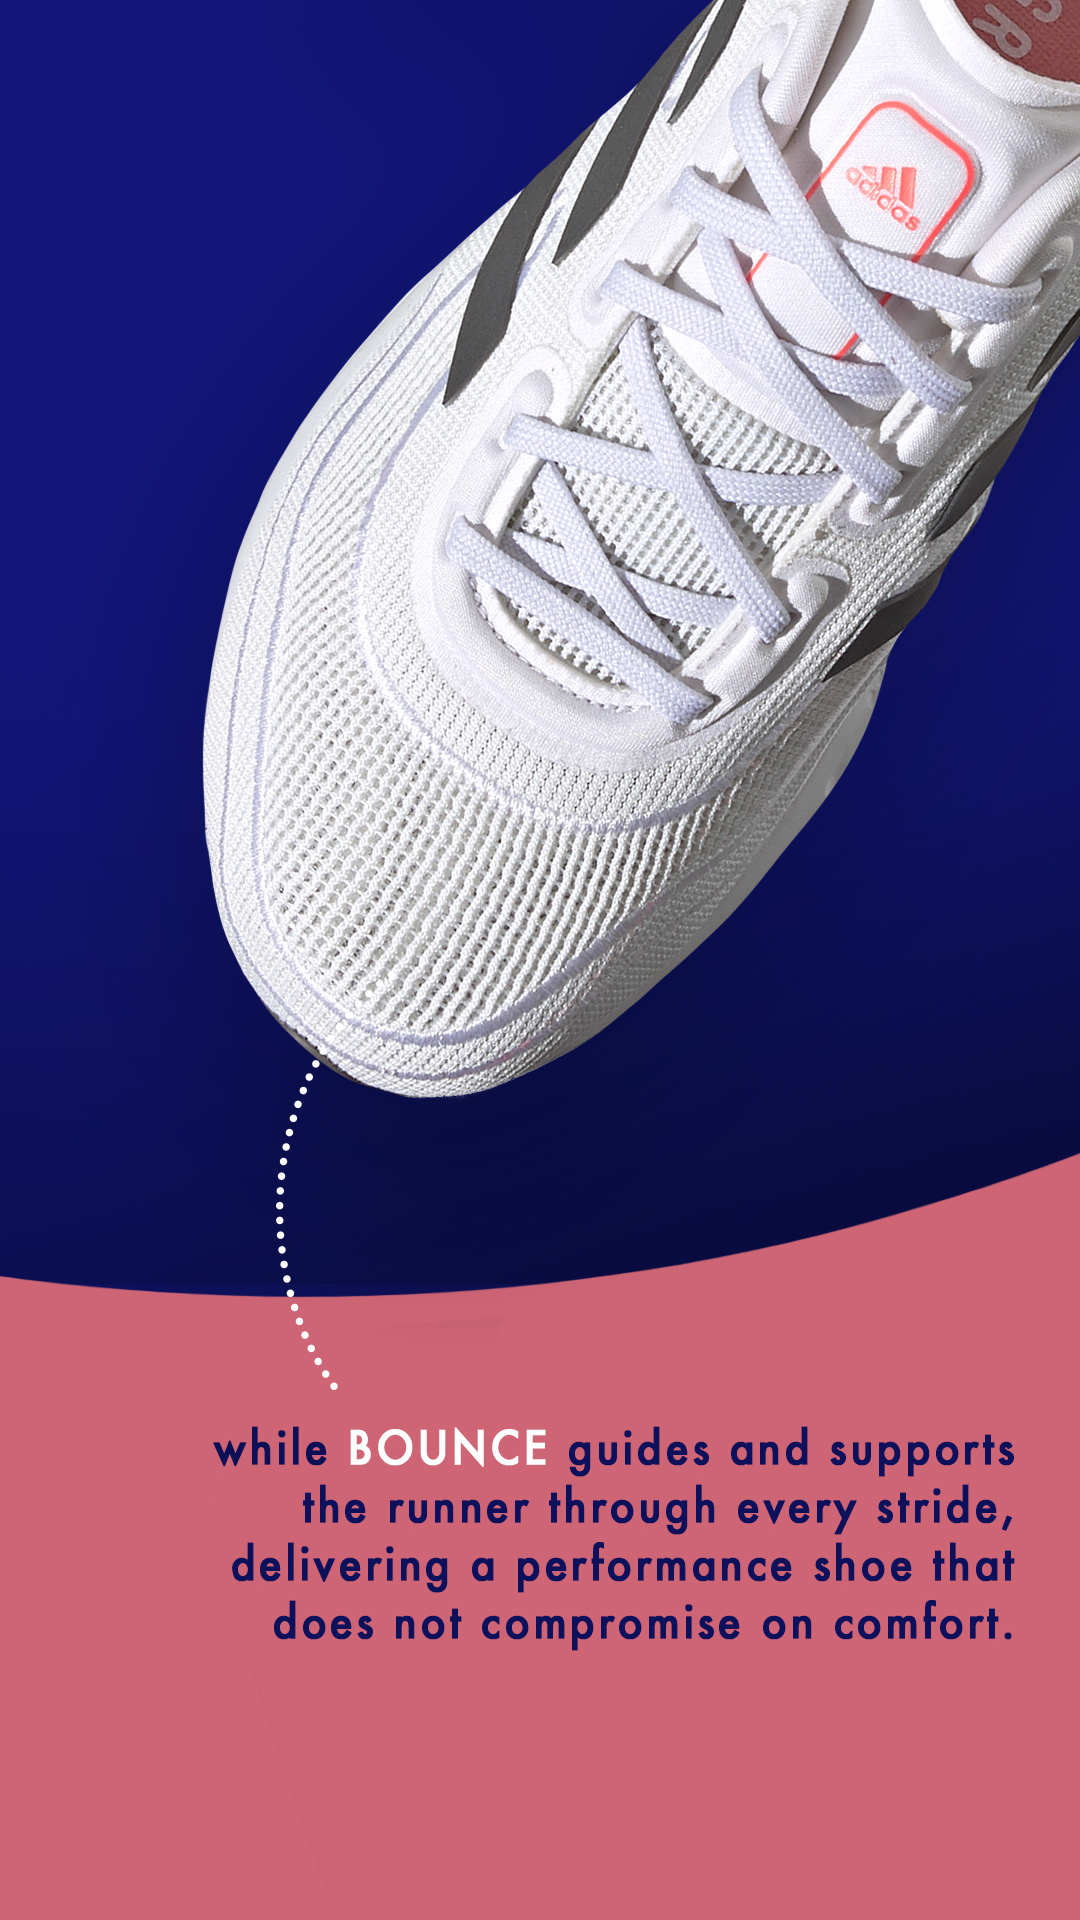 While Bounce guides and supports the runner through every stride.